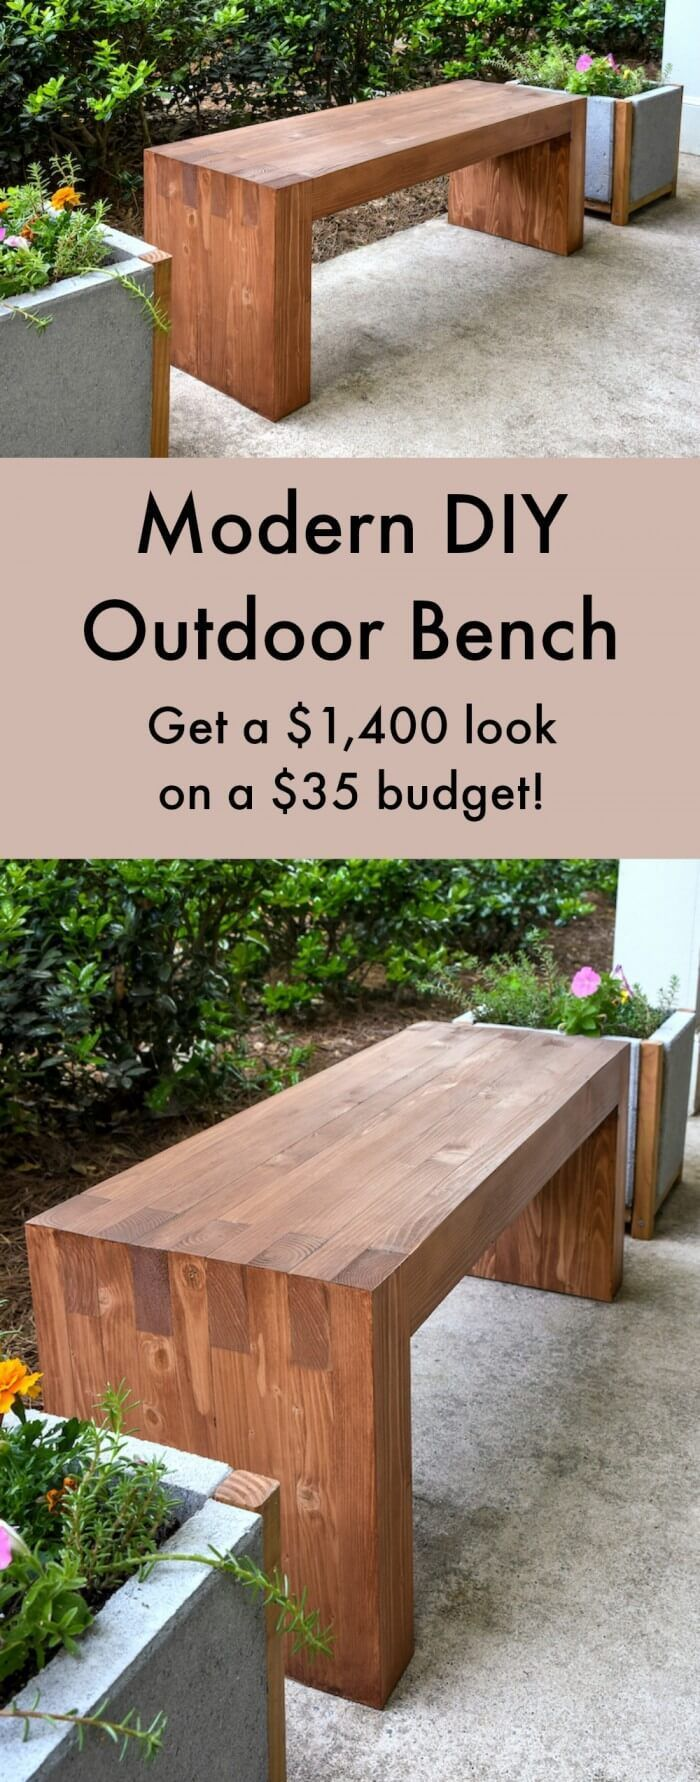 Best 25+ Modern outdoor benches ideas on Pinterest | Benches, Diy ...